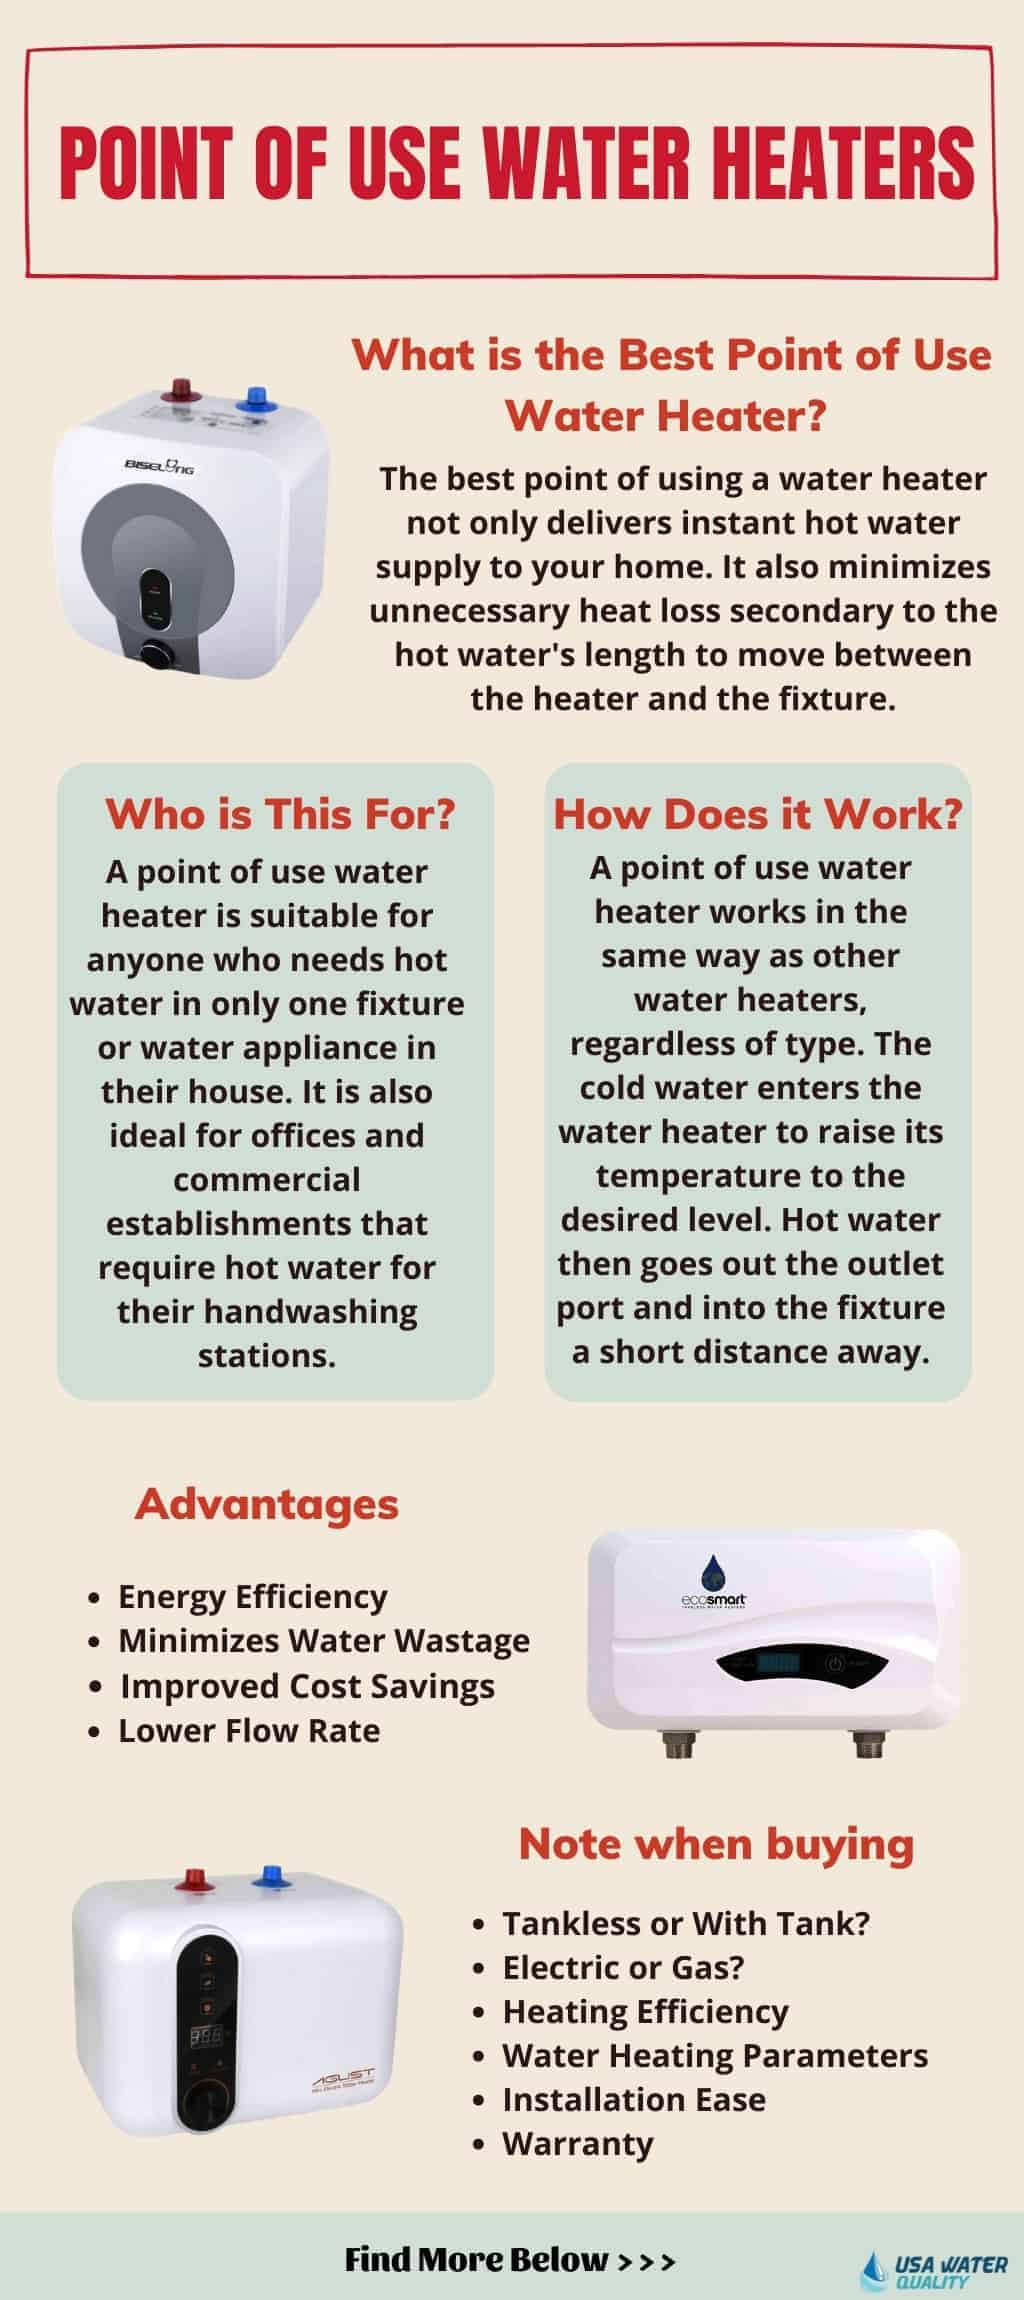 rheem-point-of-use-water-heater